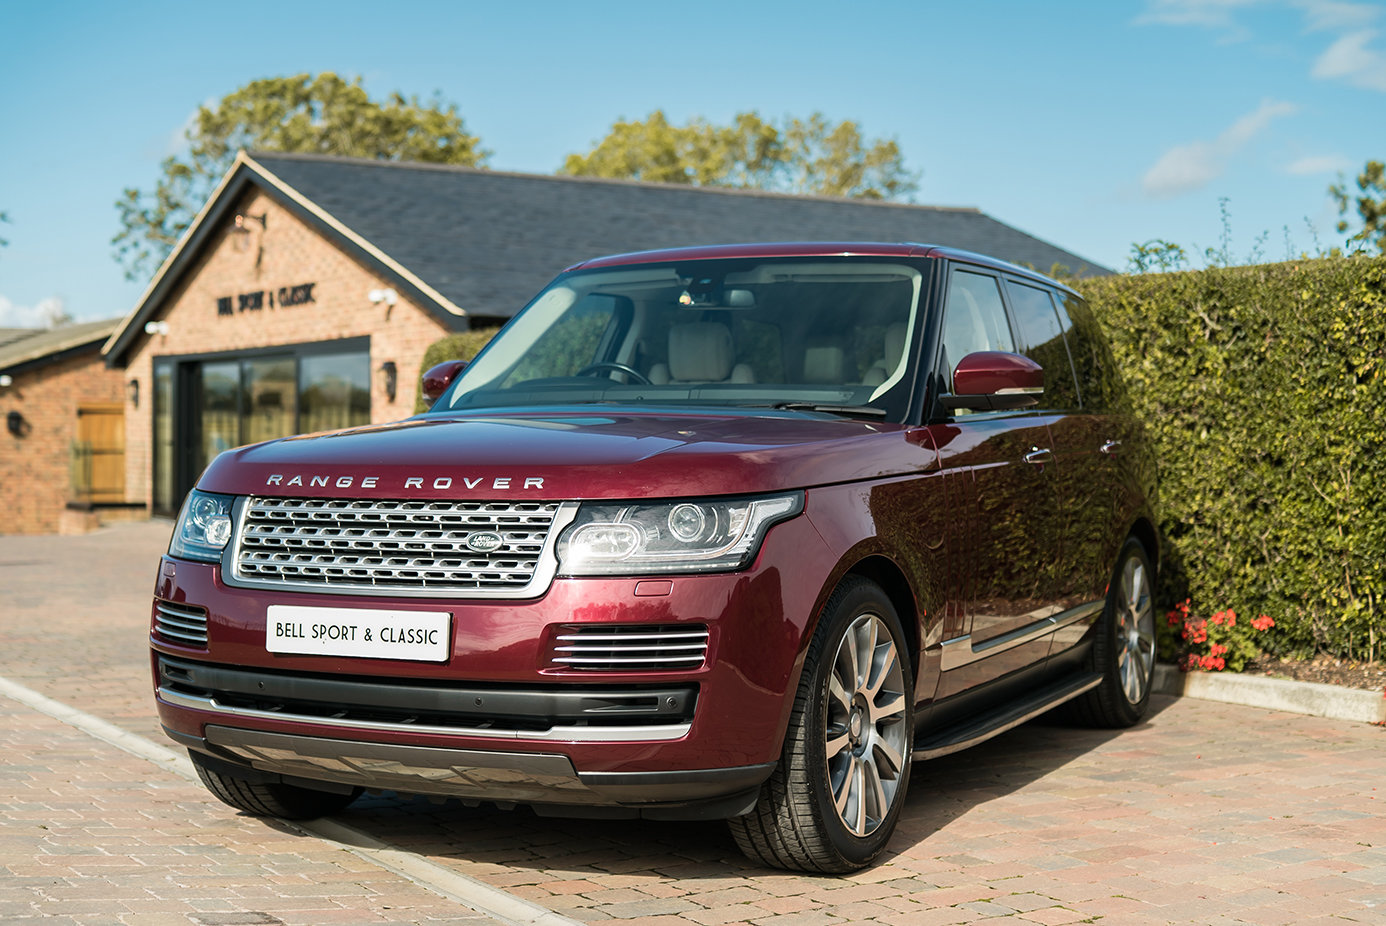 2016 Range Rover 3.0 TD Vogue SE Auto For Sale (picture 1 of 6)